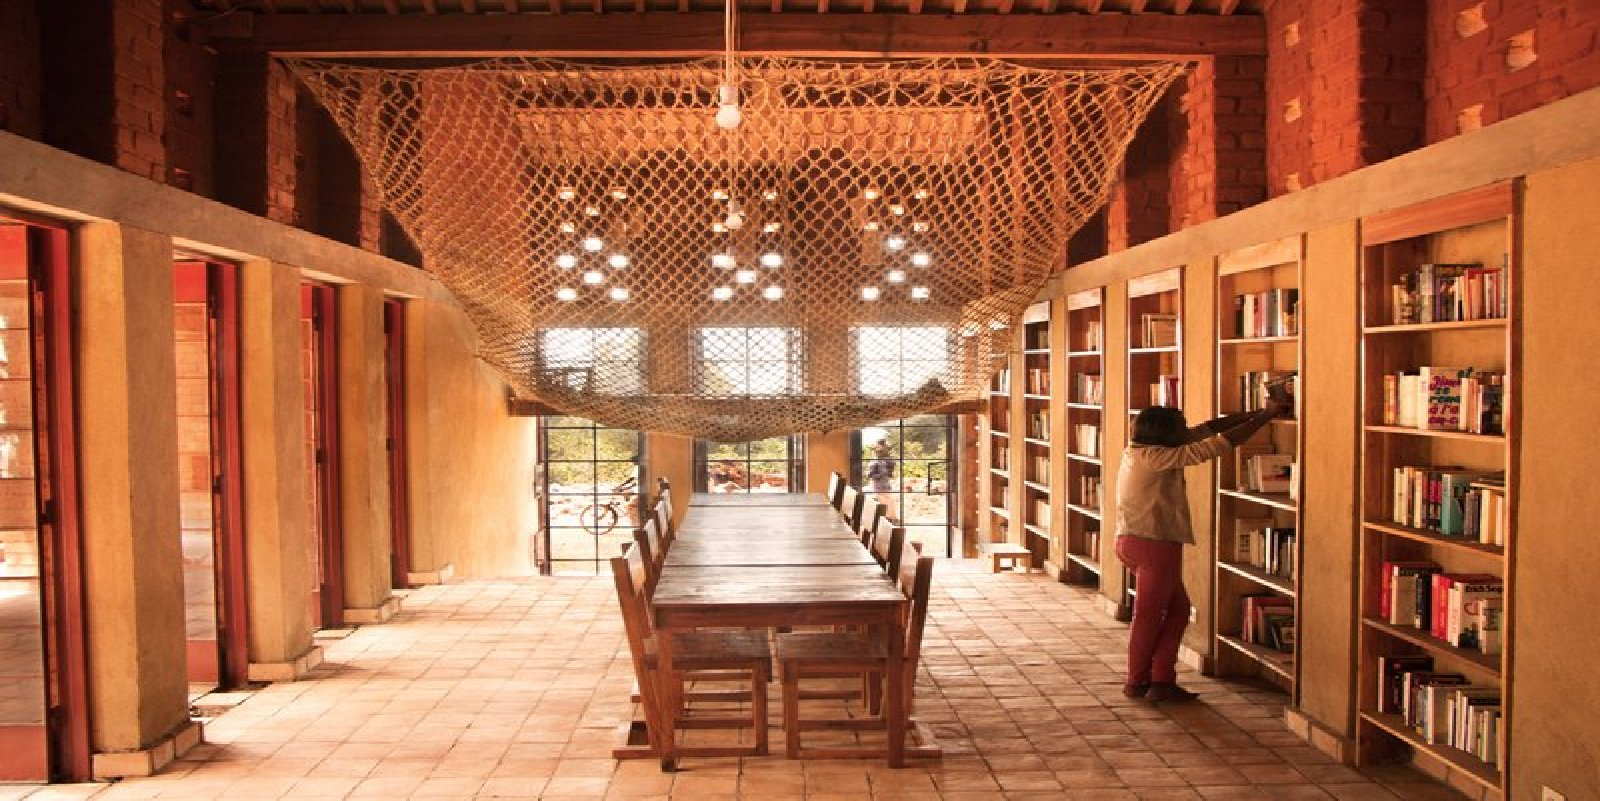 Bc architects muyinga community library burundi